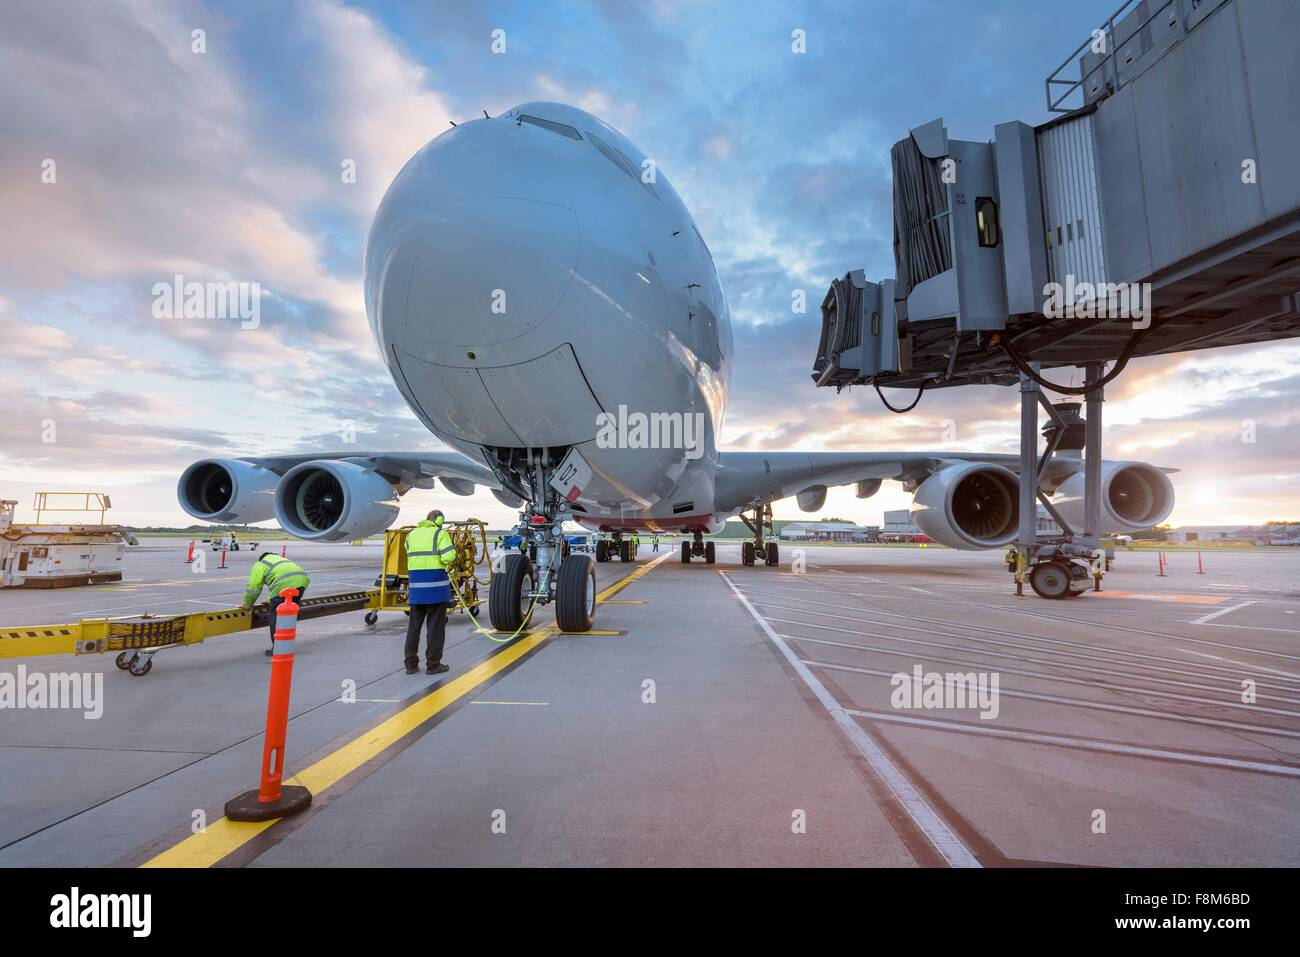 A380 aircraft on stand at airport Stock Photo